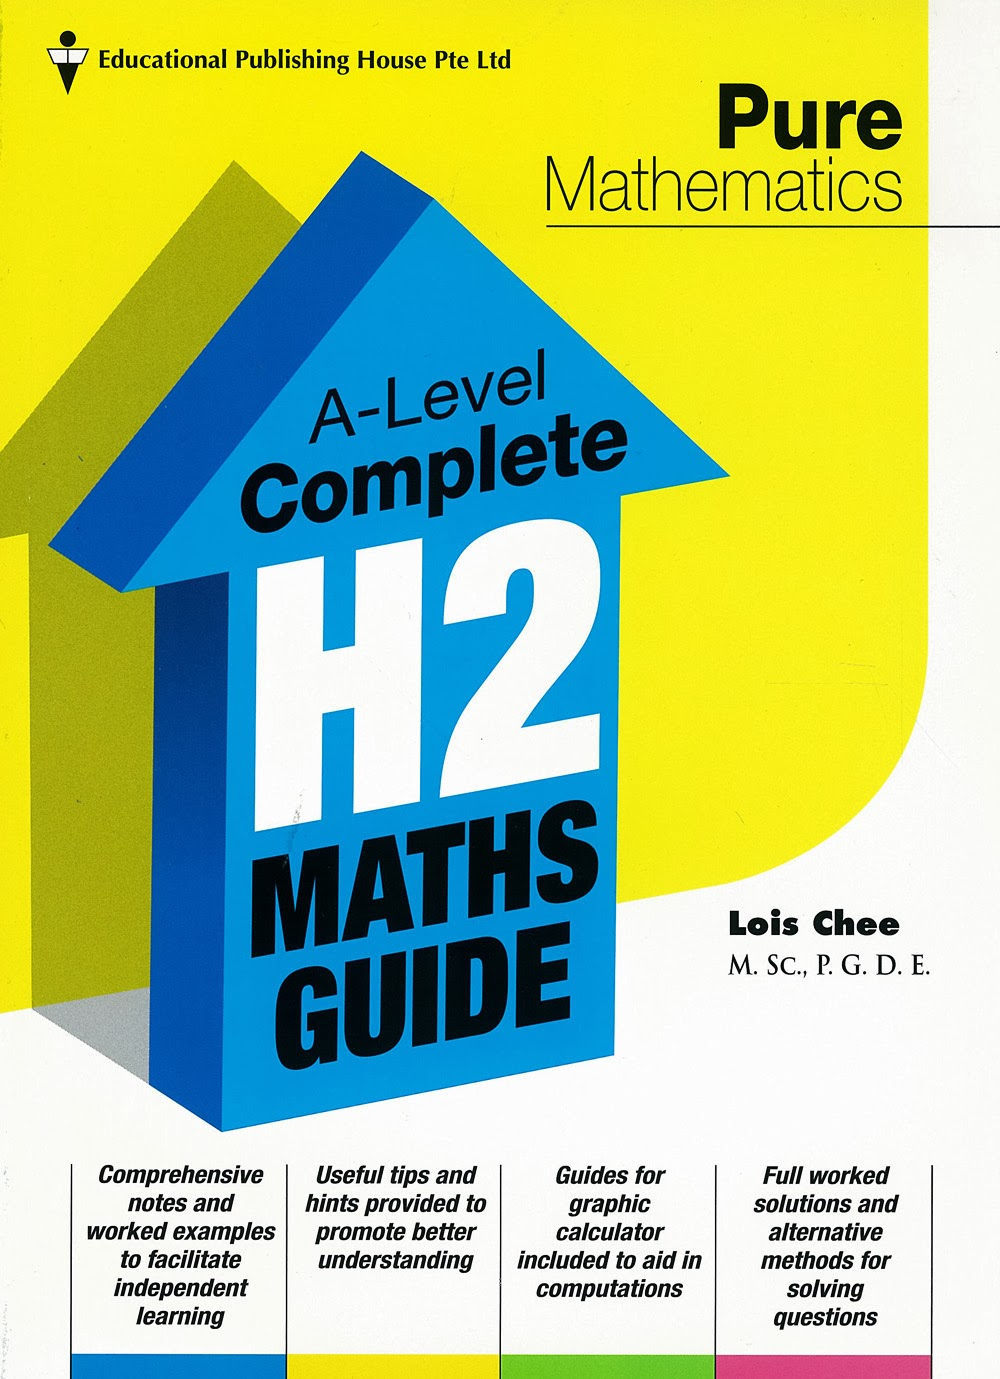 Recommended H2 materials – H2 Maths Tuition & Tips